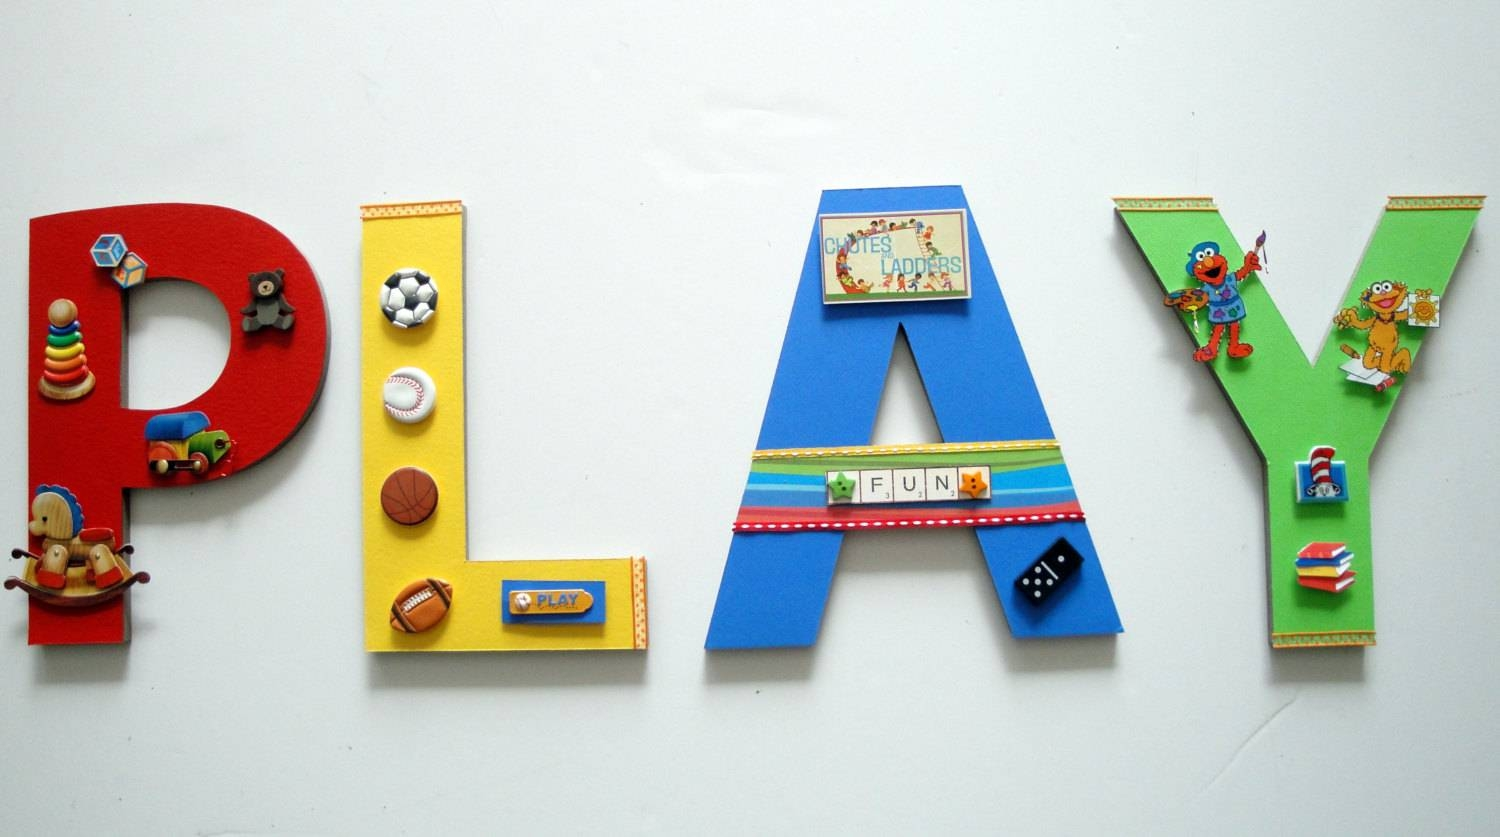 Playroom Wall Letters Playroom Wall Art Toys And Games Wall Intended For Recent Playroom Wall Art (View 21 of 30)